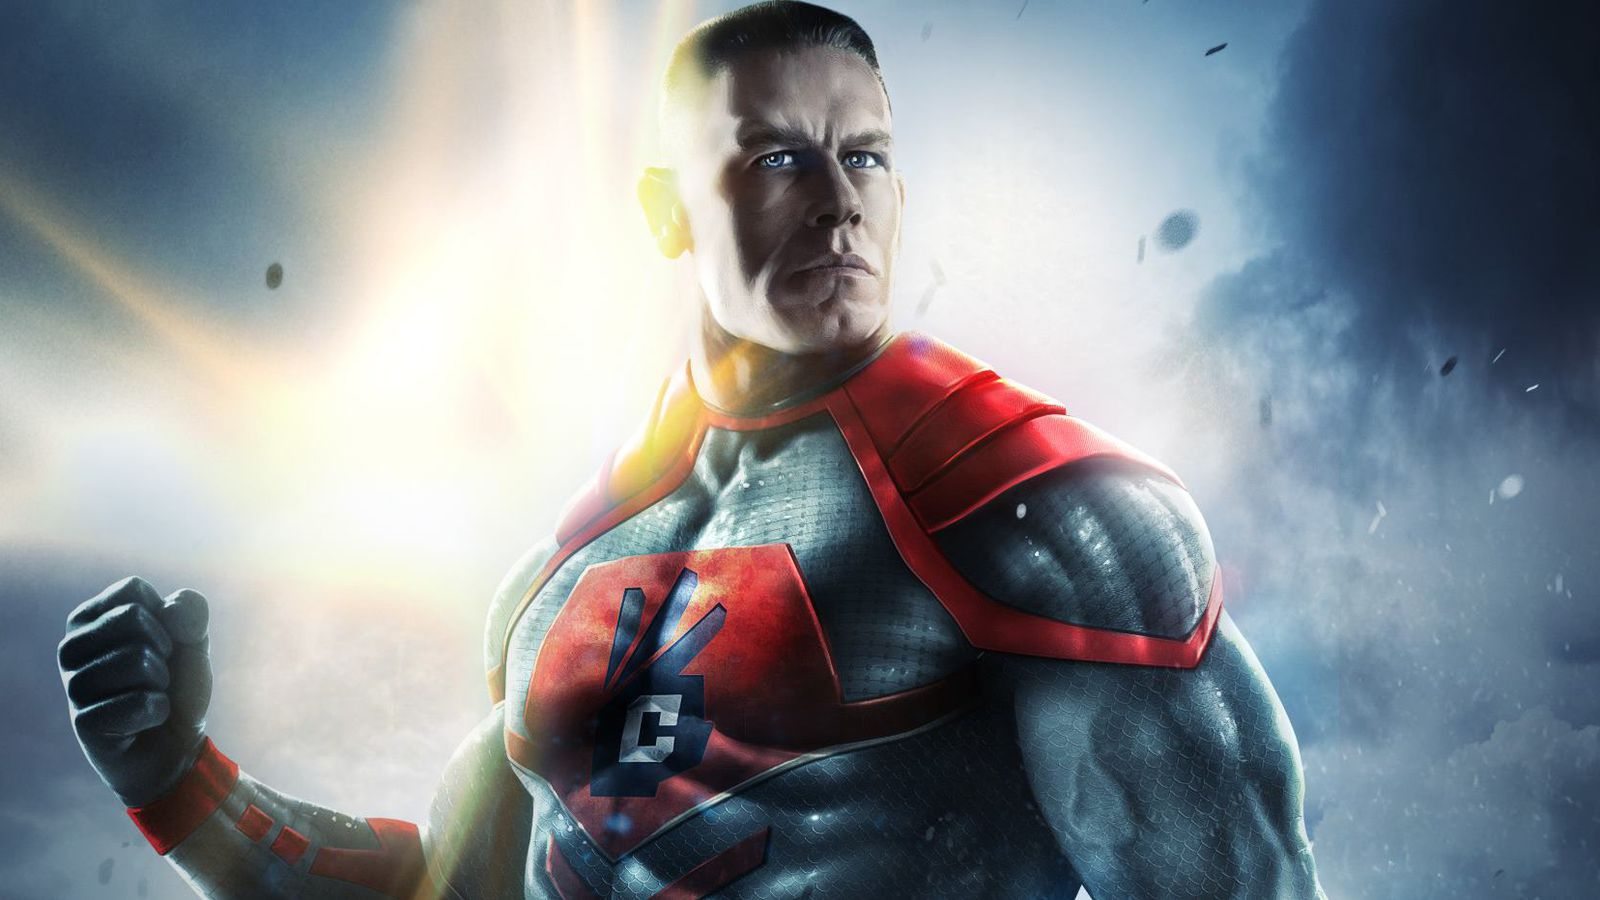 Falling Money Hd Wallpaper Wwe Immortals What If The Rock Was A God And John Cena